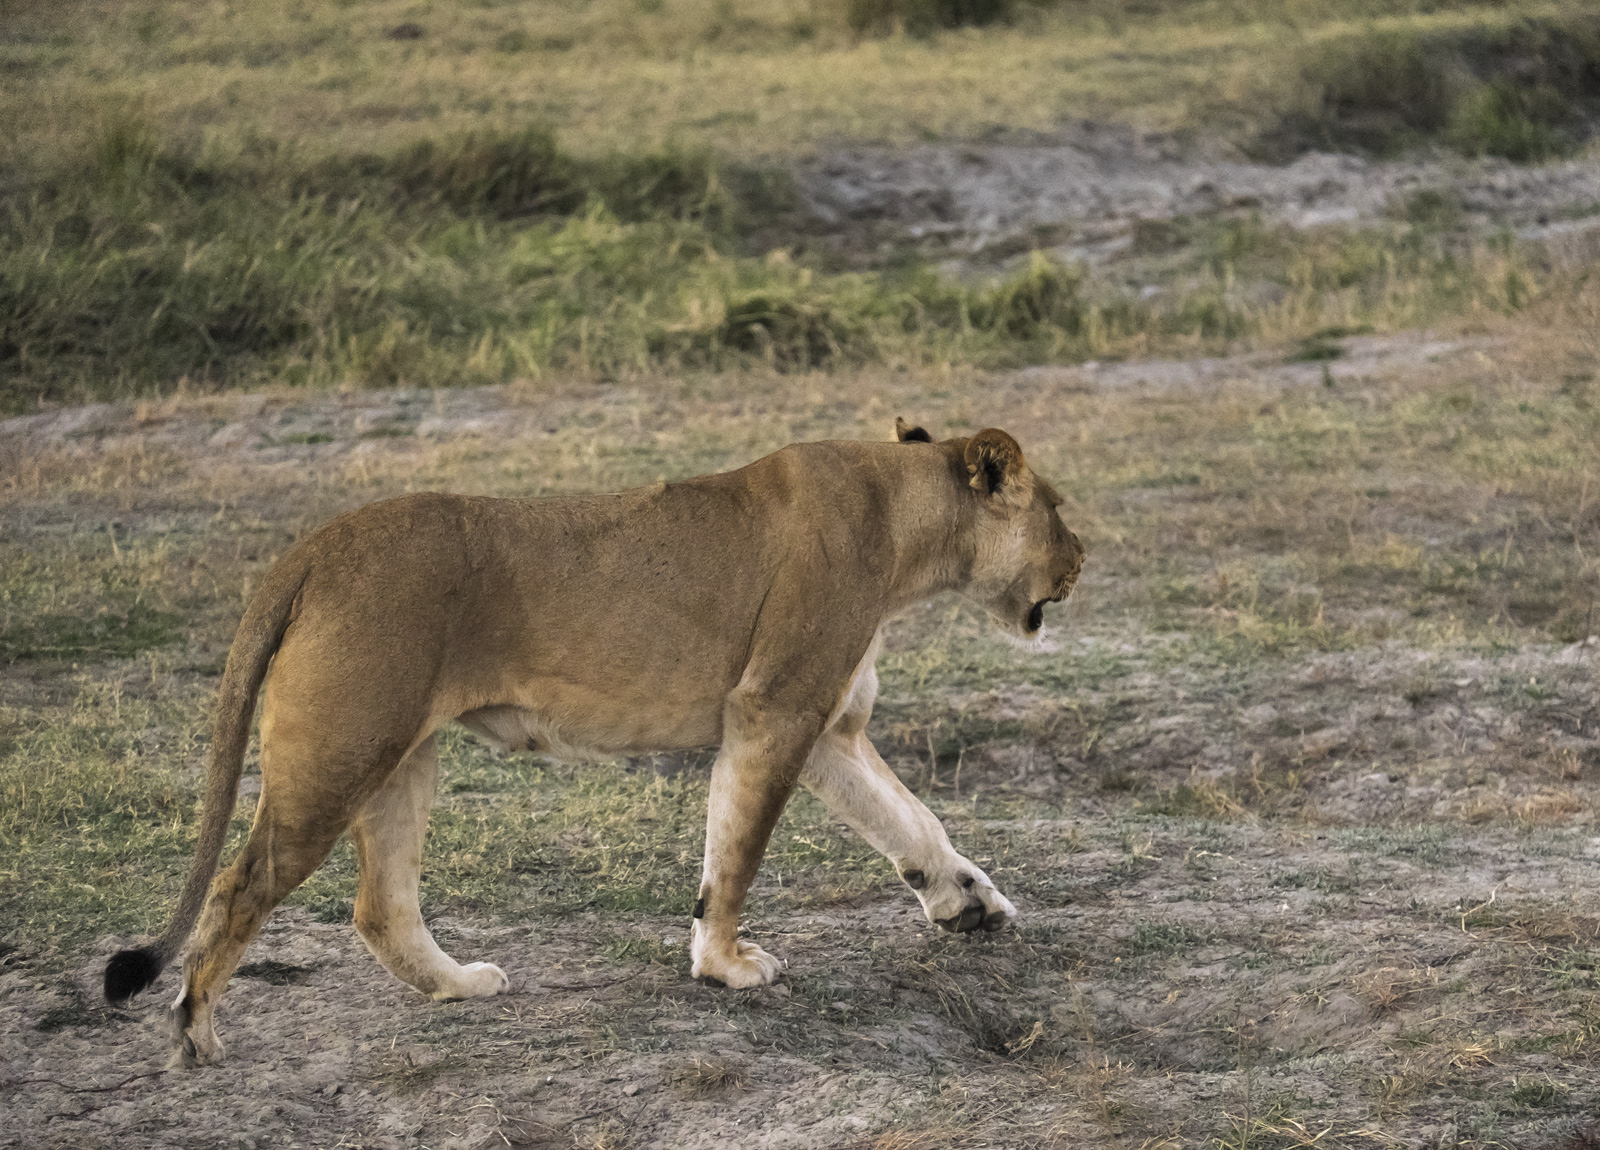 I have to be honest my only previous sighting of a lion left me distinctly unimpressed. That time it lounged on the ground...